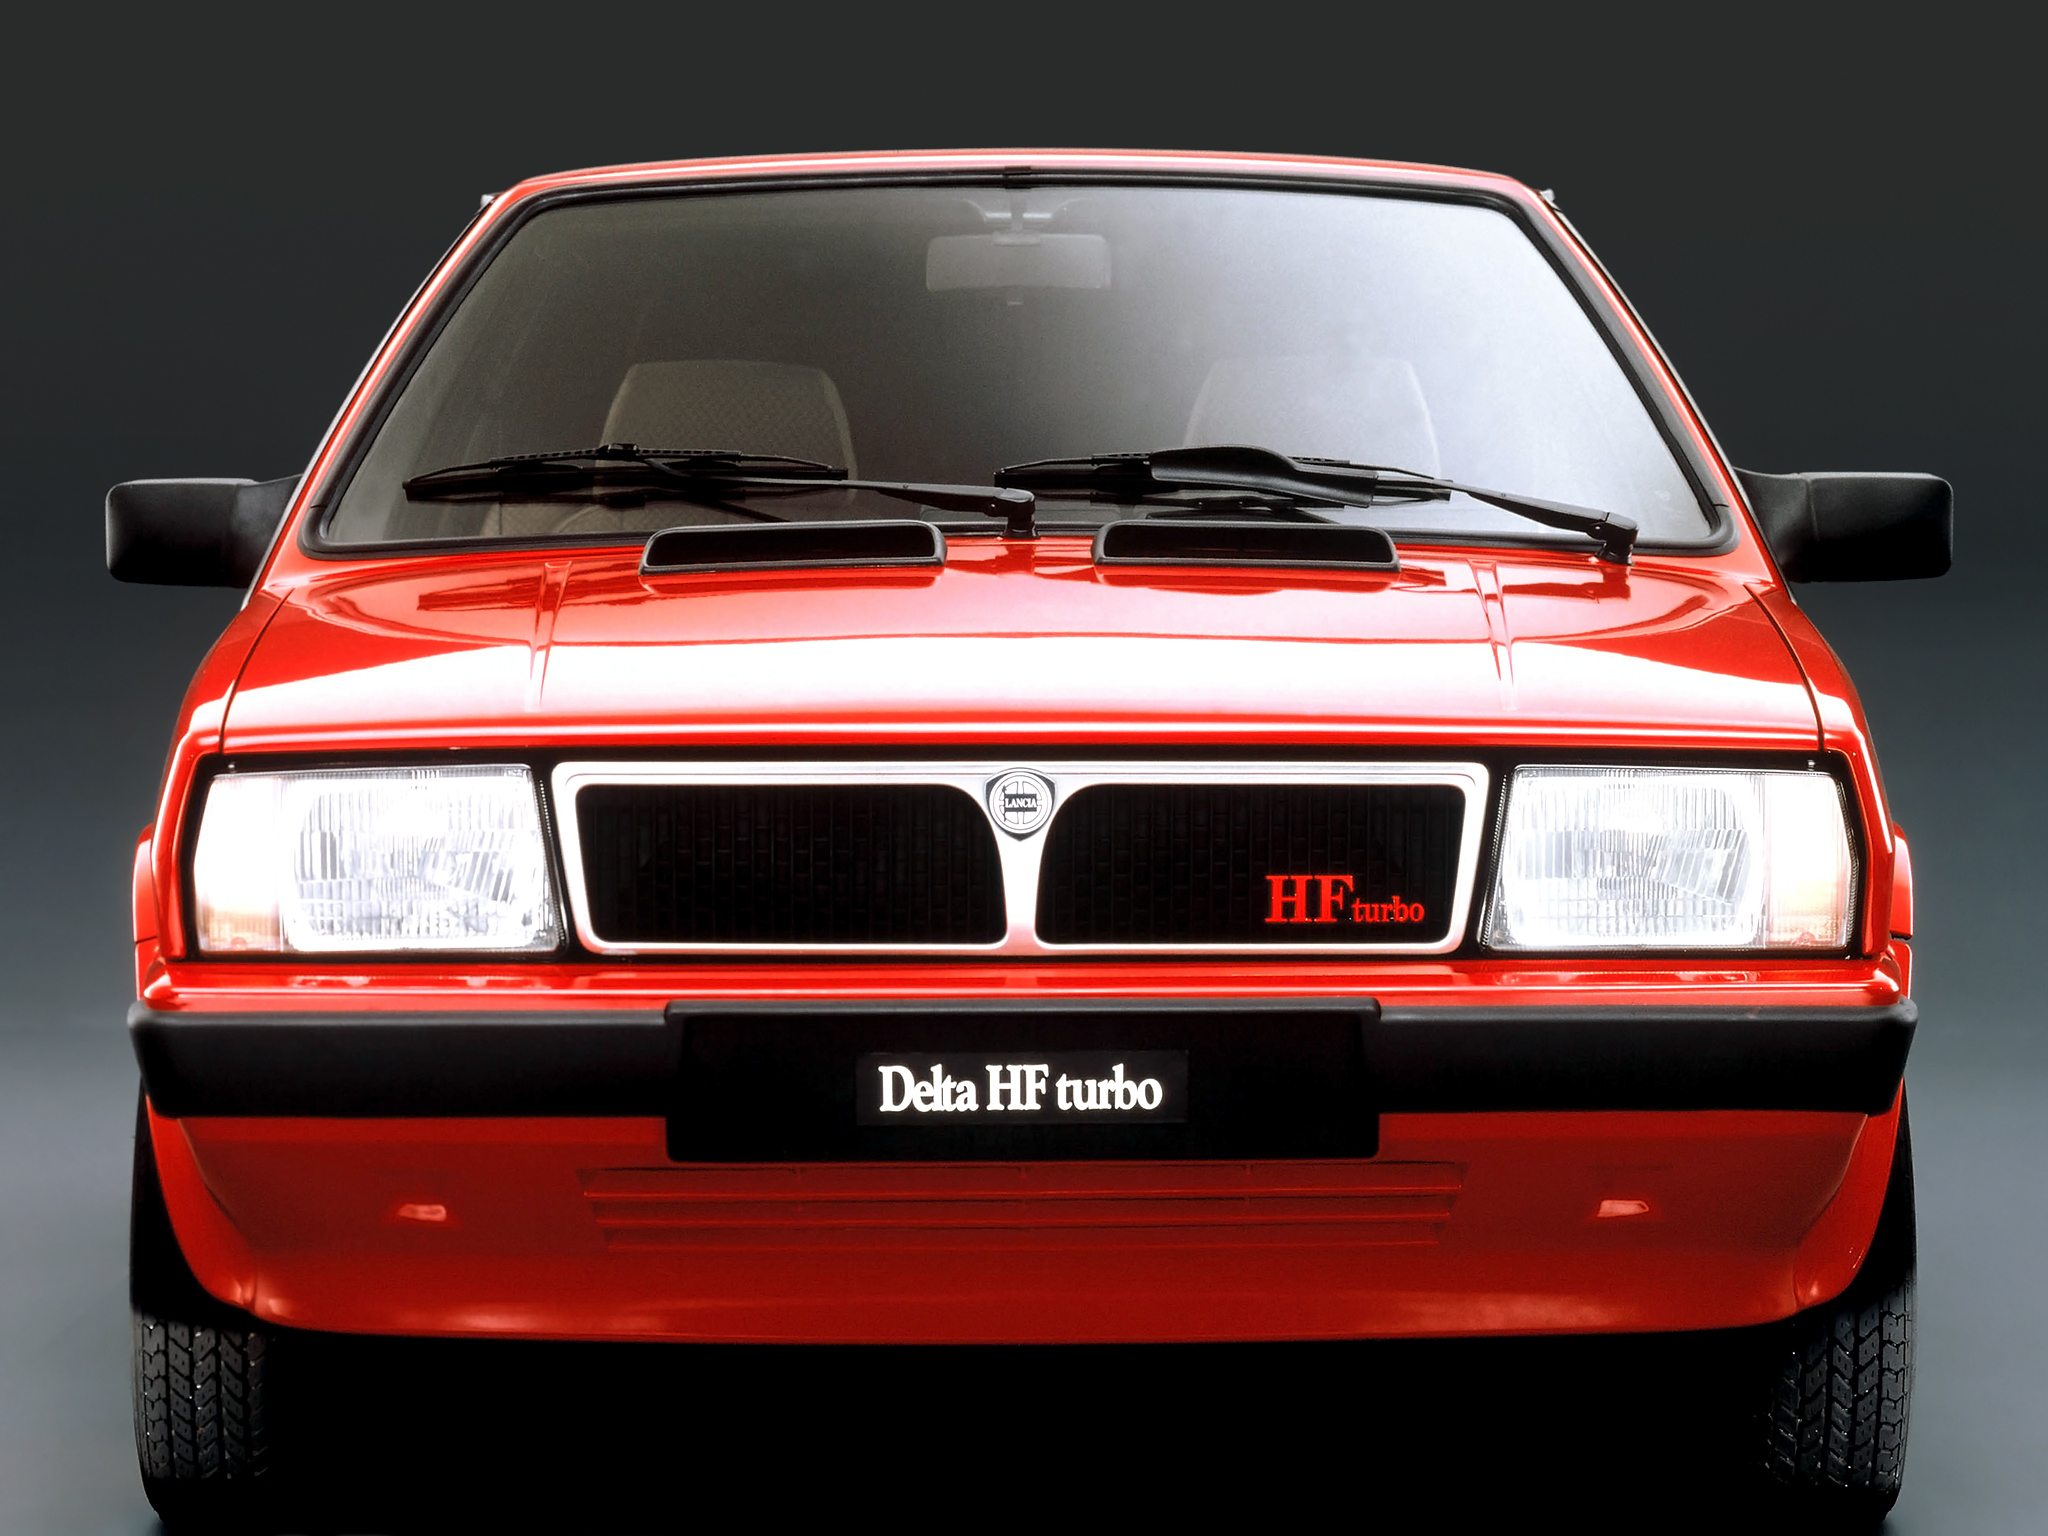 Index of /data_images/galleryes/lancia-delta-hf-turbo/